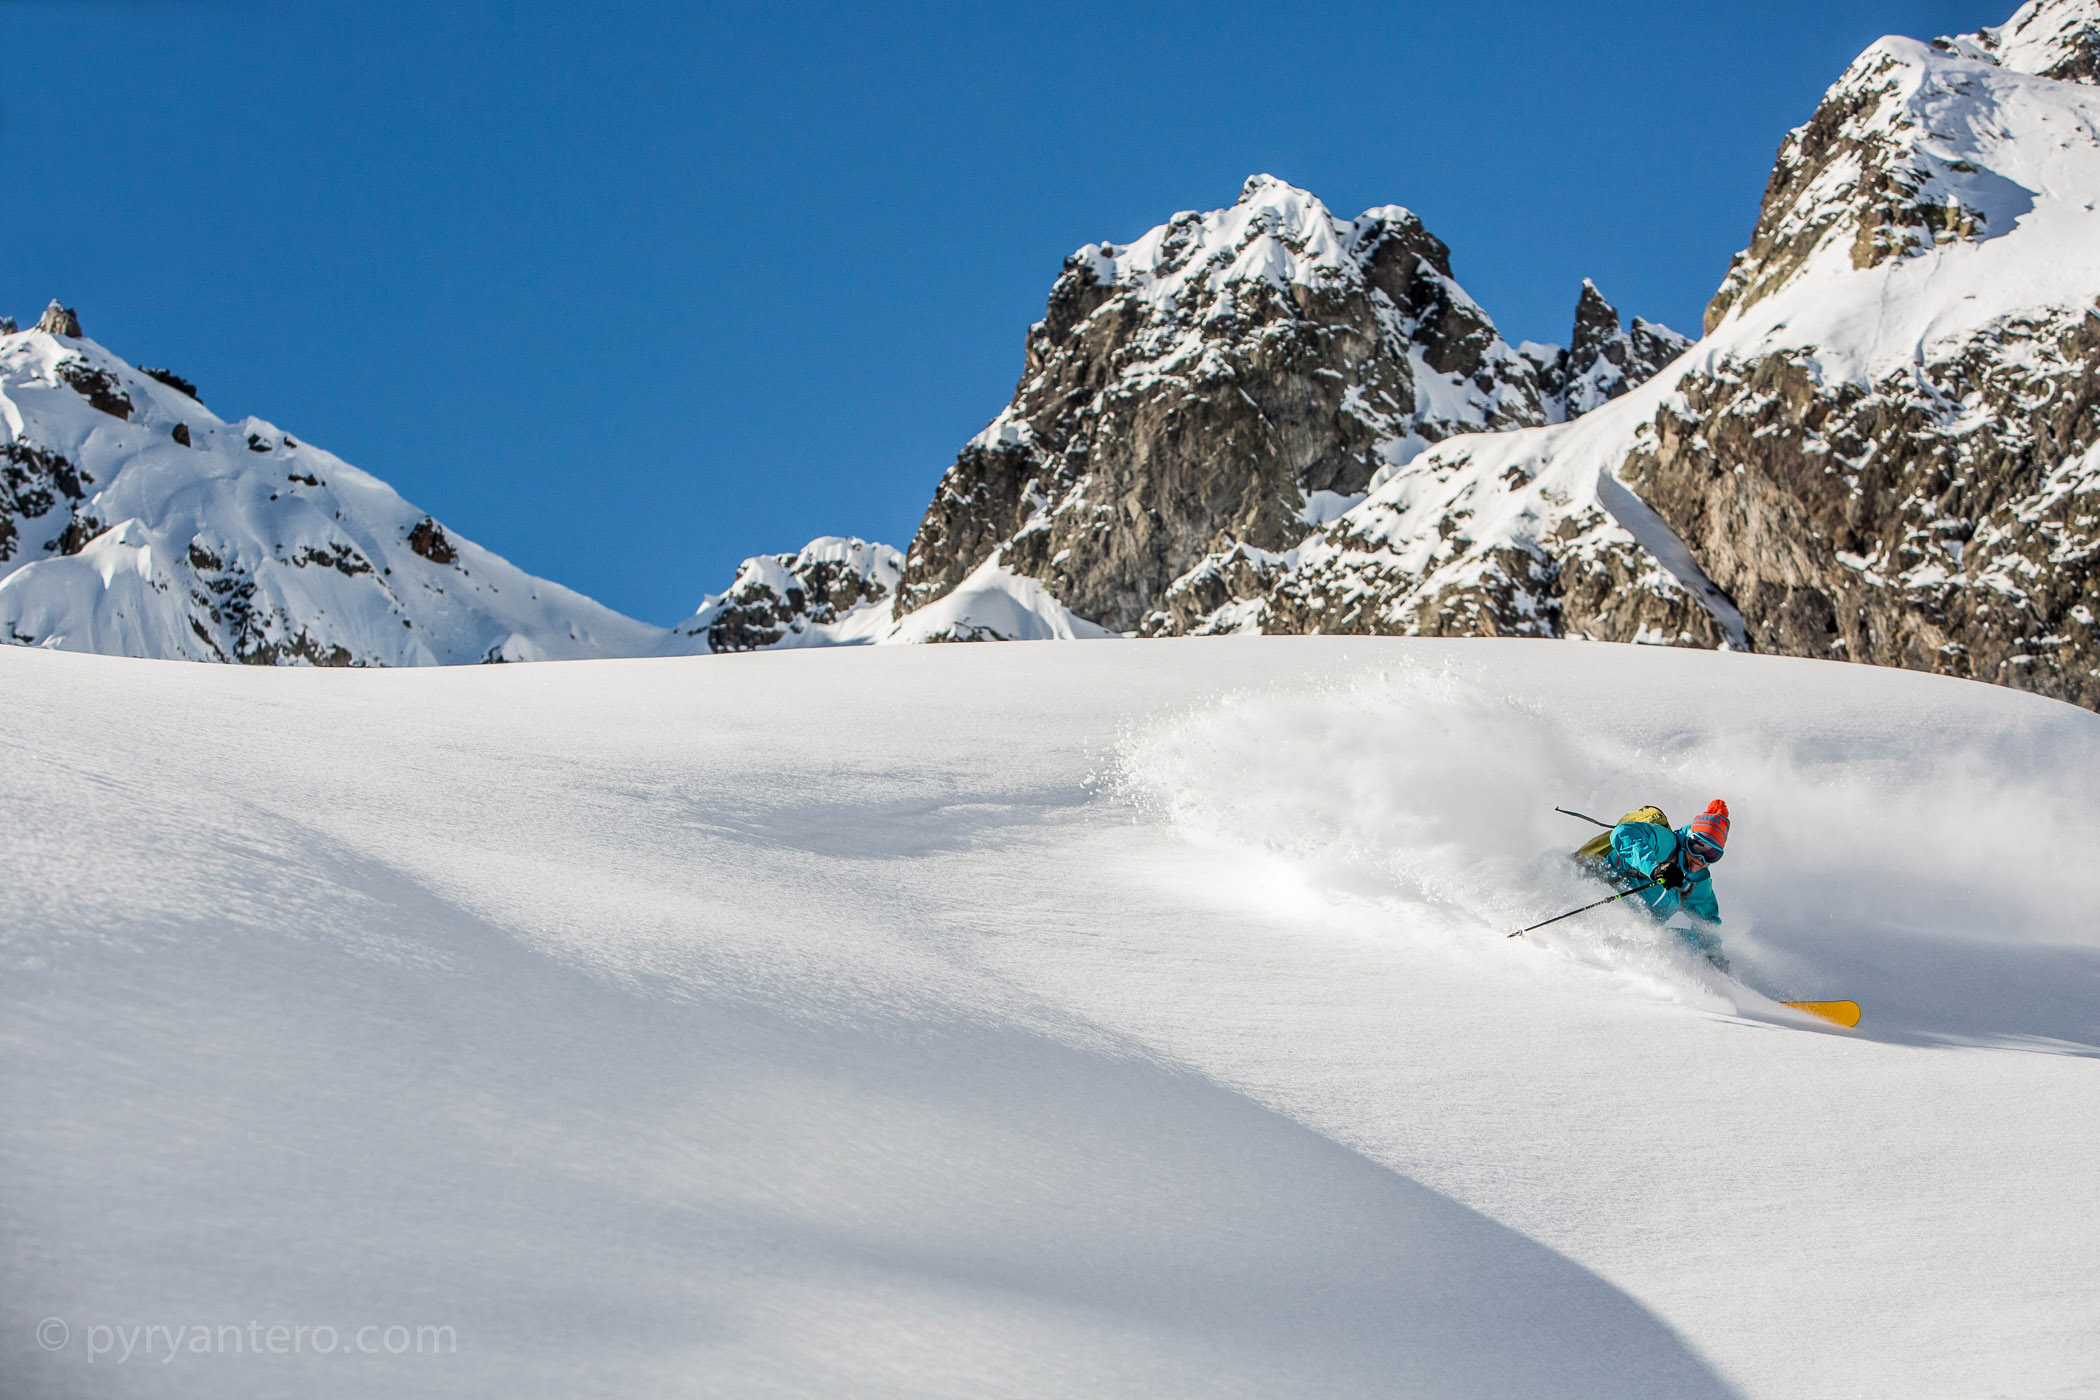 Niko Pettersson and Marker ski bindings in powder snow, Chamonix, Mont Blanc, France, © Pyry Antero Photography